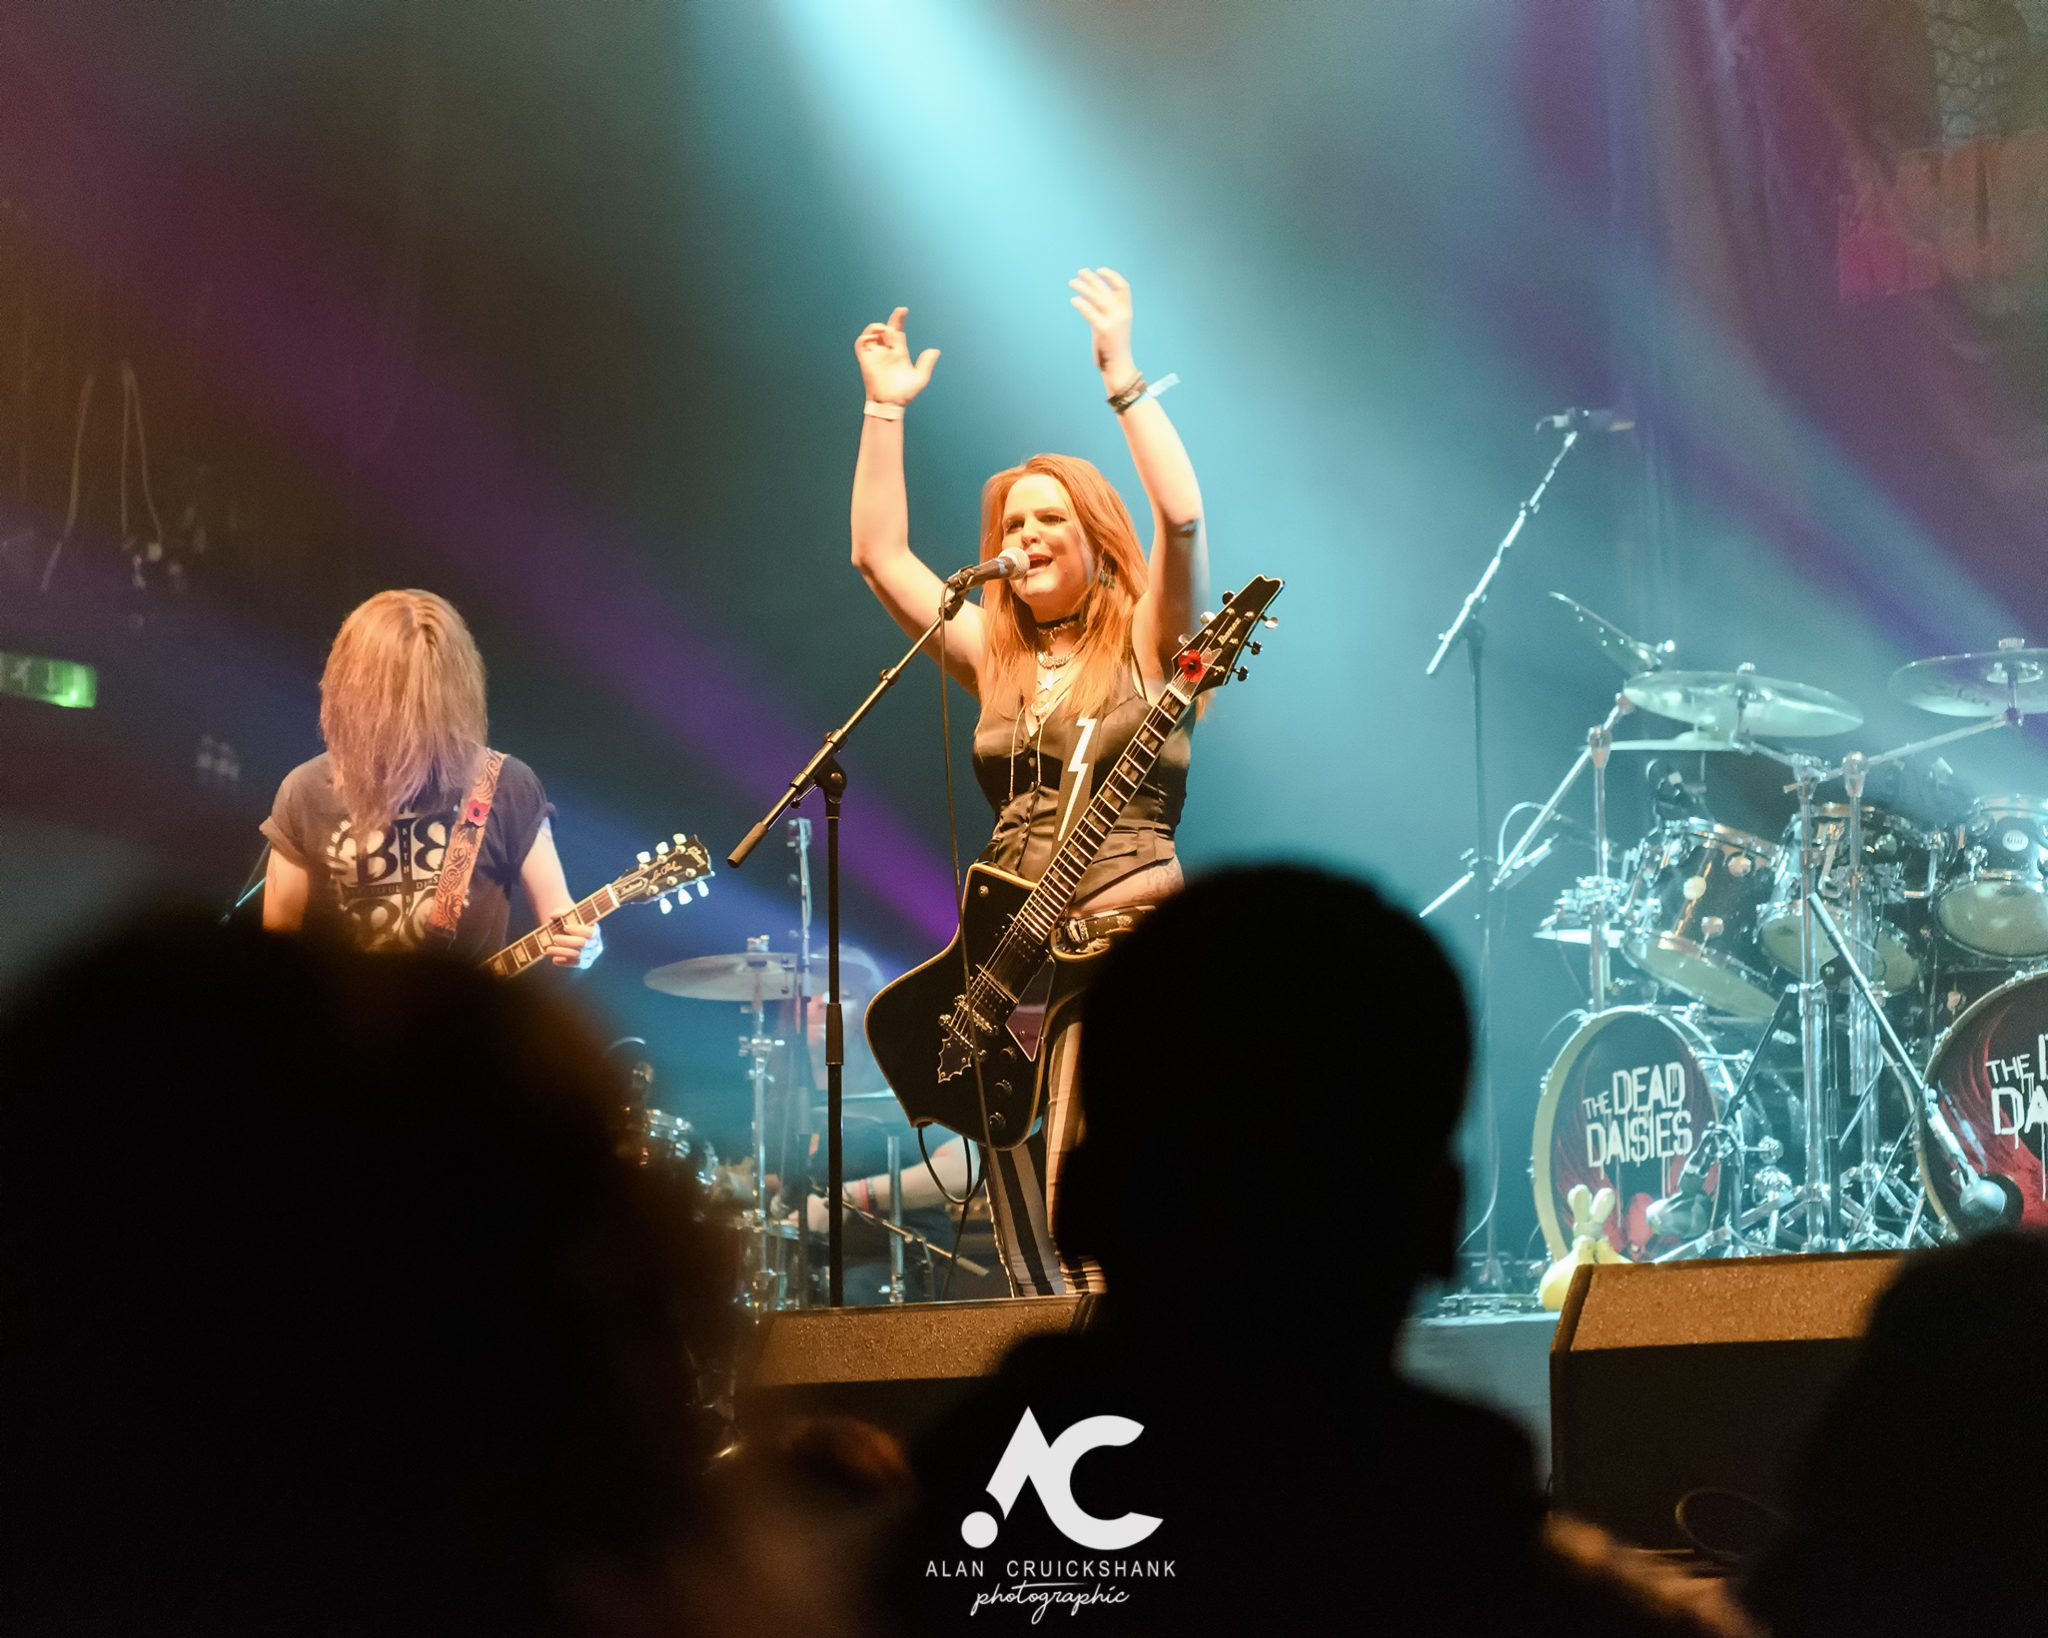 Beth Blade and the Beautiful Disasters at Monstersfest 2018 Ironworks Inverness November 2018 2 - Monstersfest 2018 - IMAGES